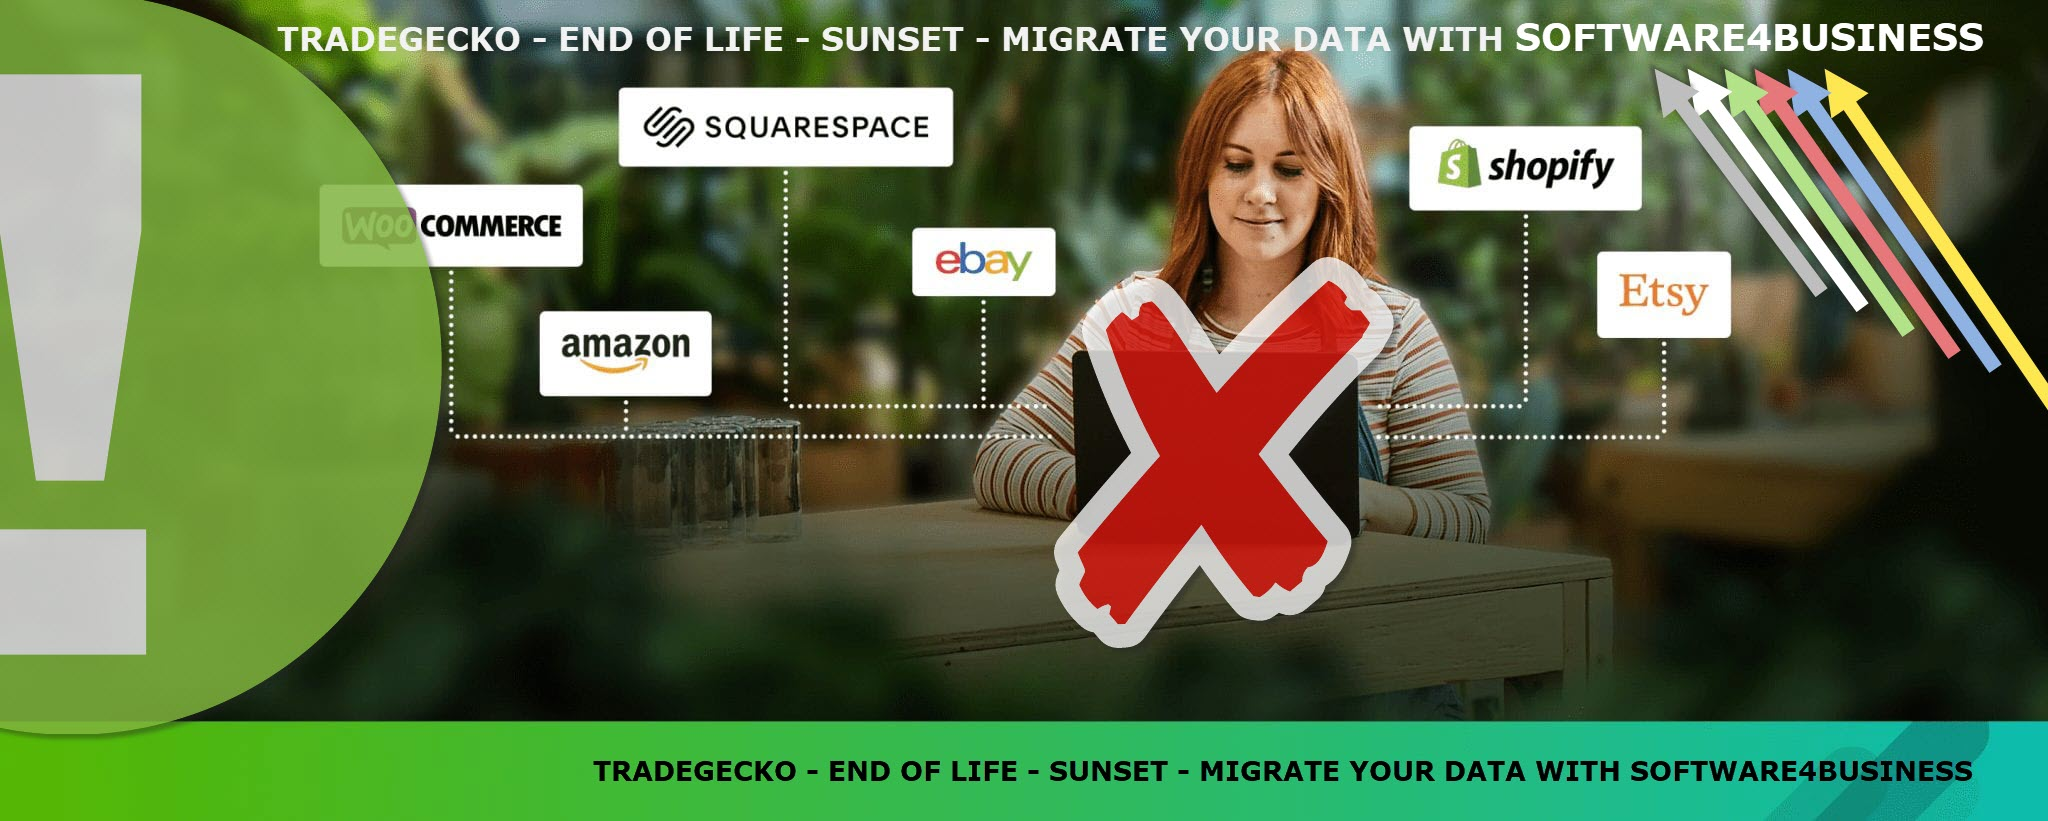 TRADEGECKO - END OF LIFE - SUNSET - MIGRATE YOUR DATA WITH SOFTWARE4BUSINESS